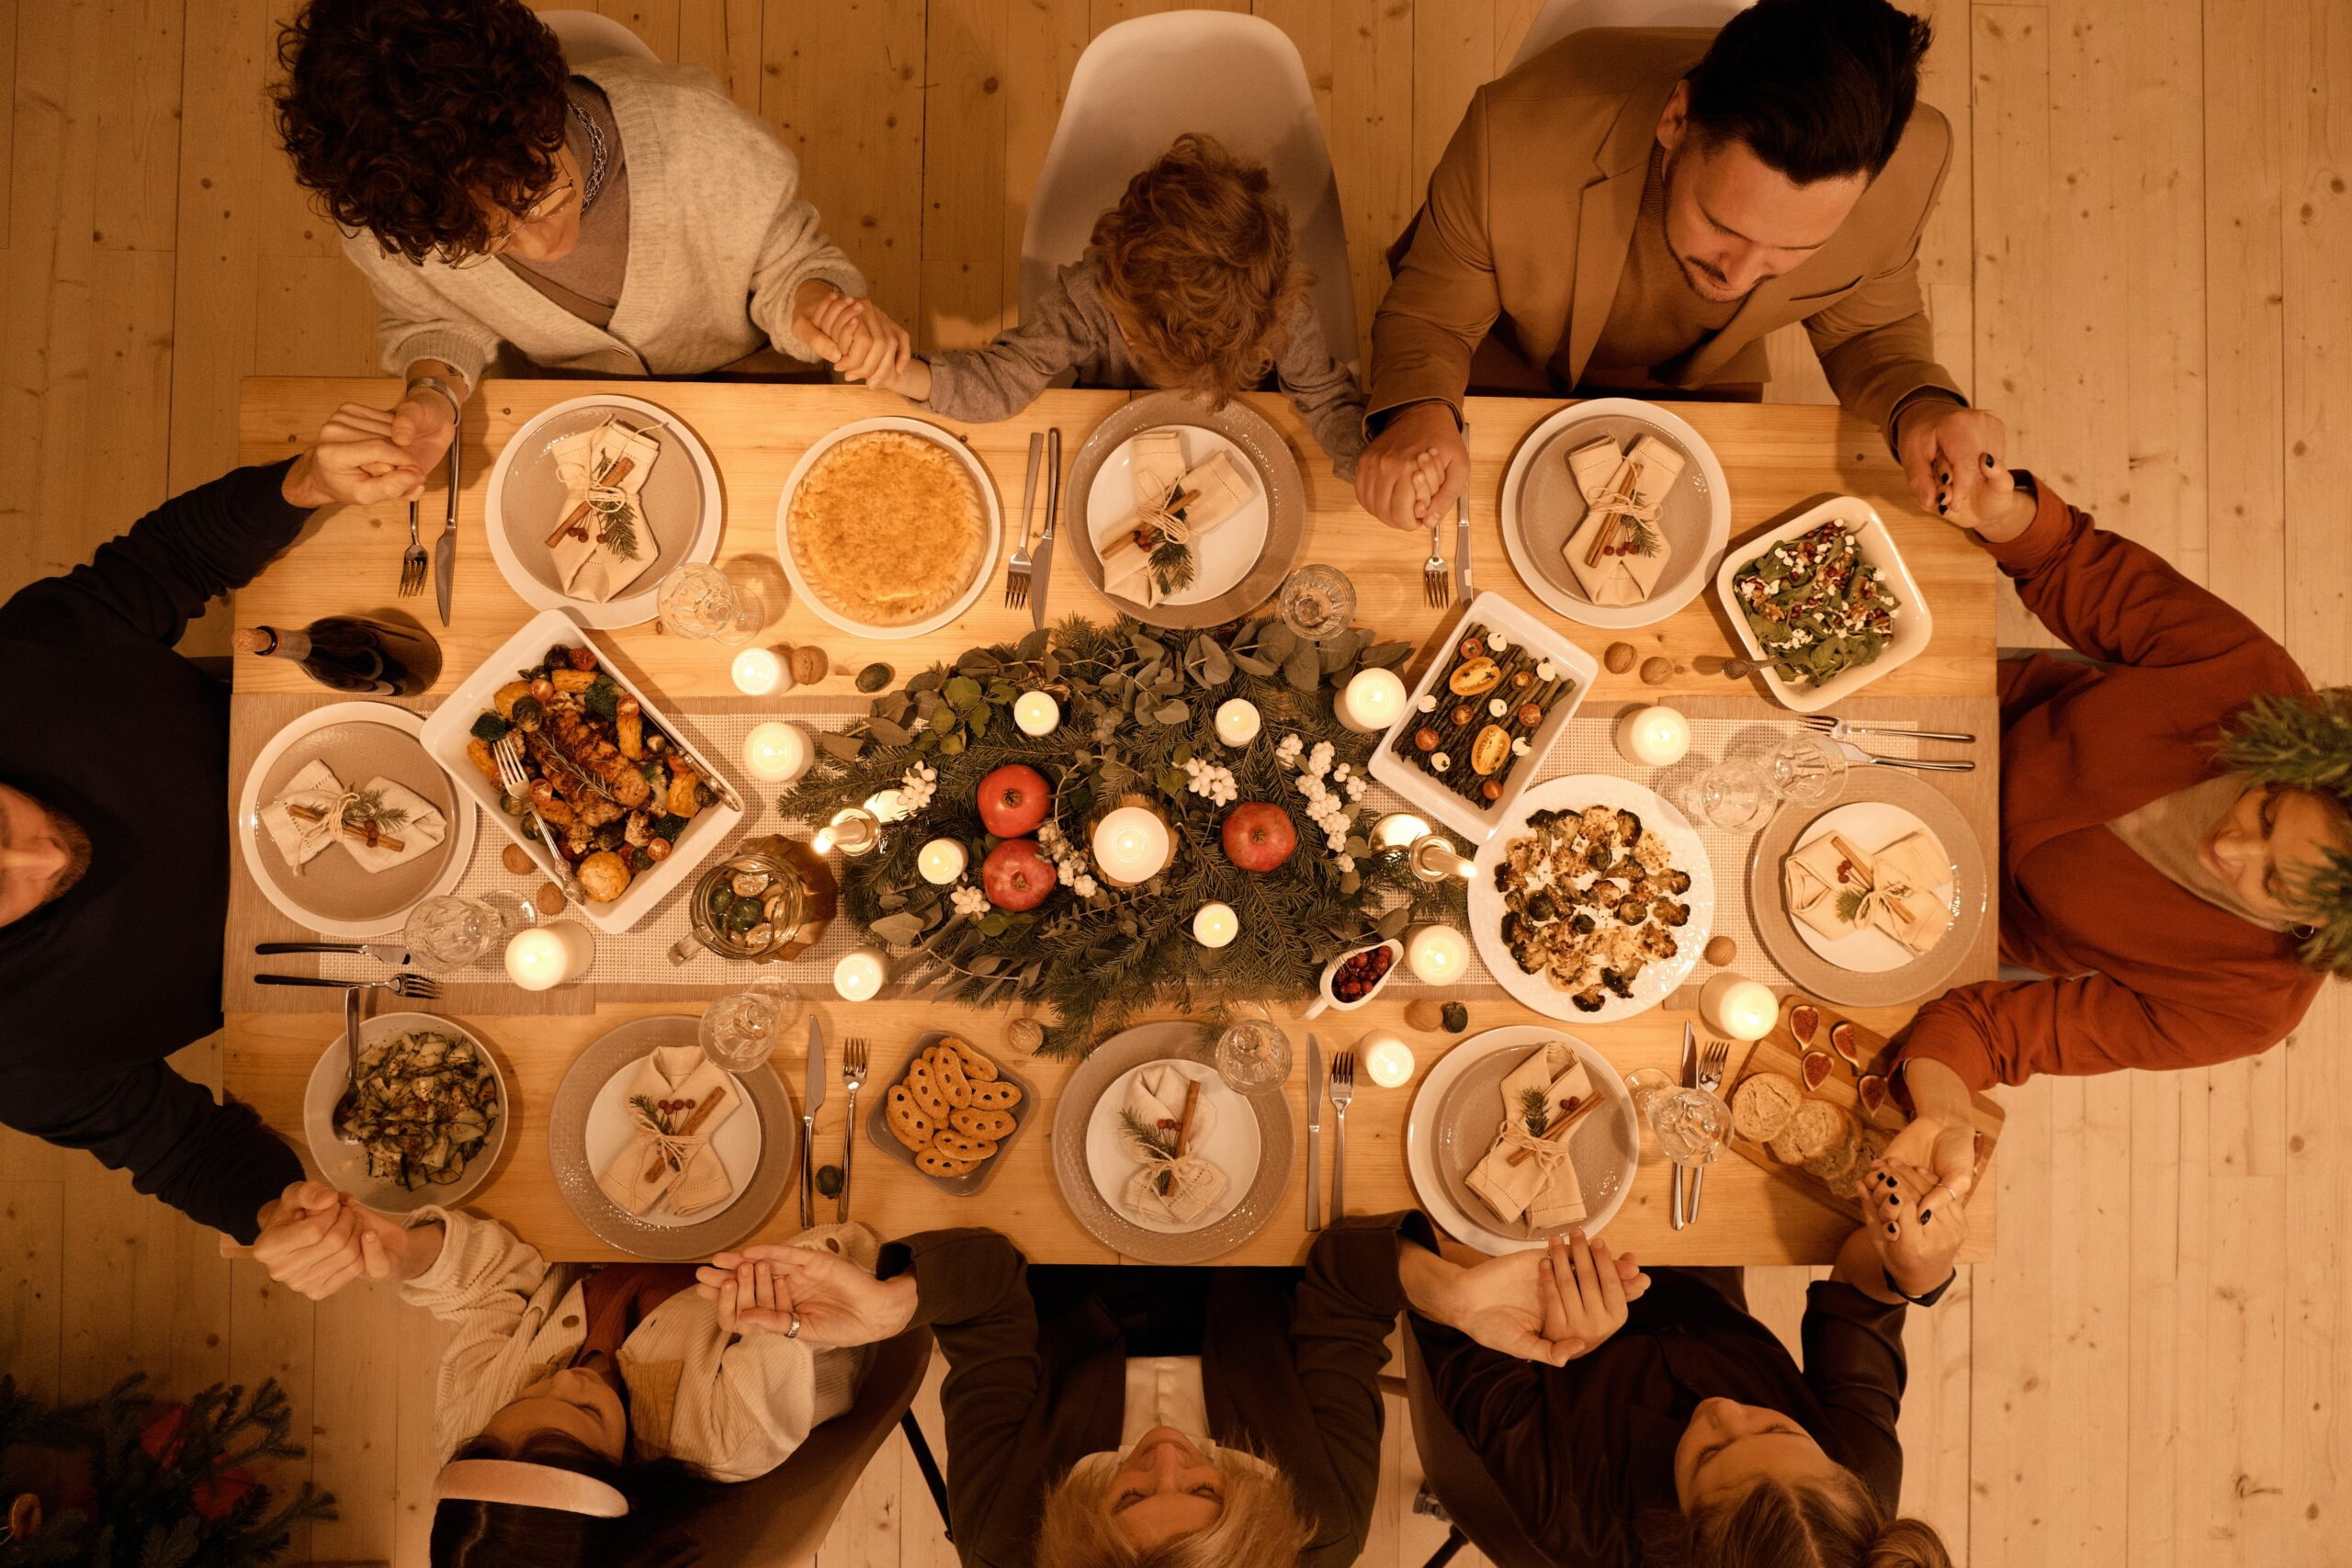 conversation commentary canada immigrant families communities holiday